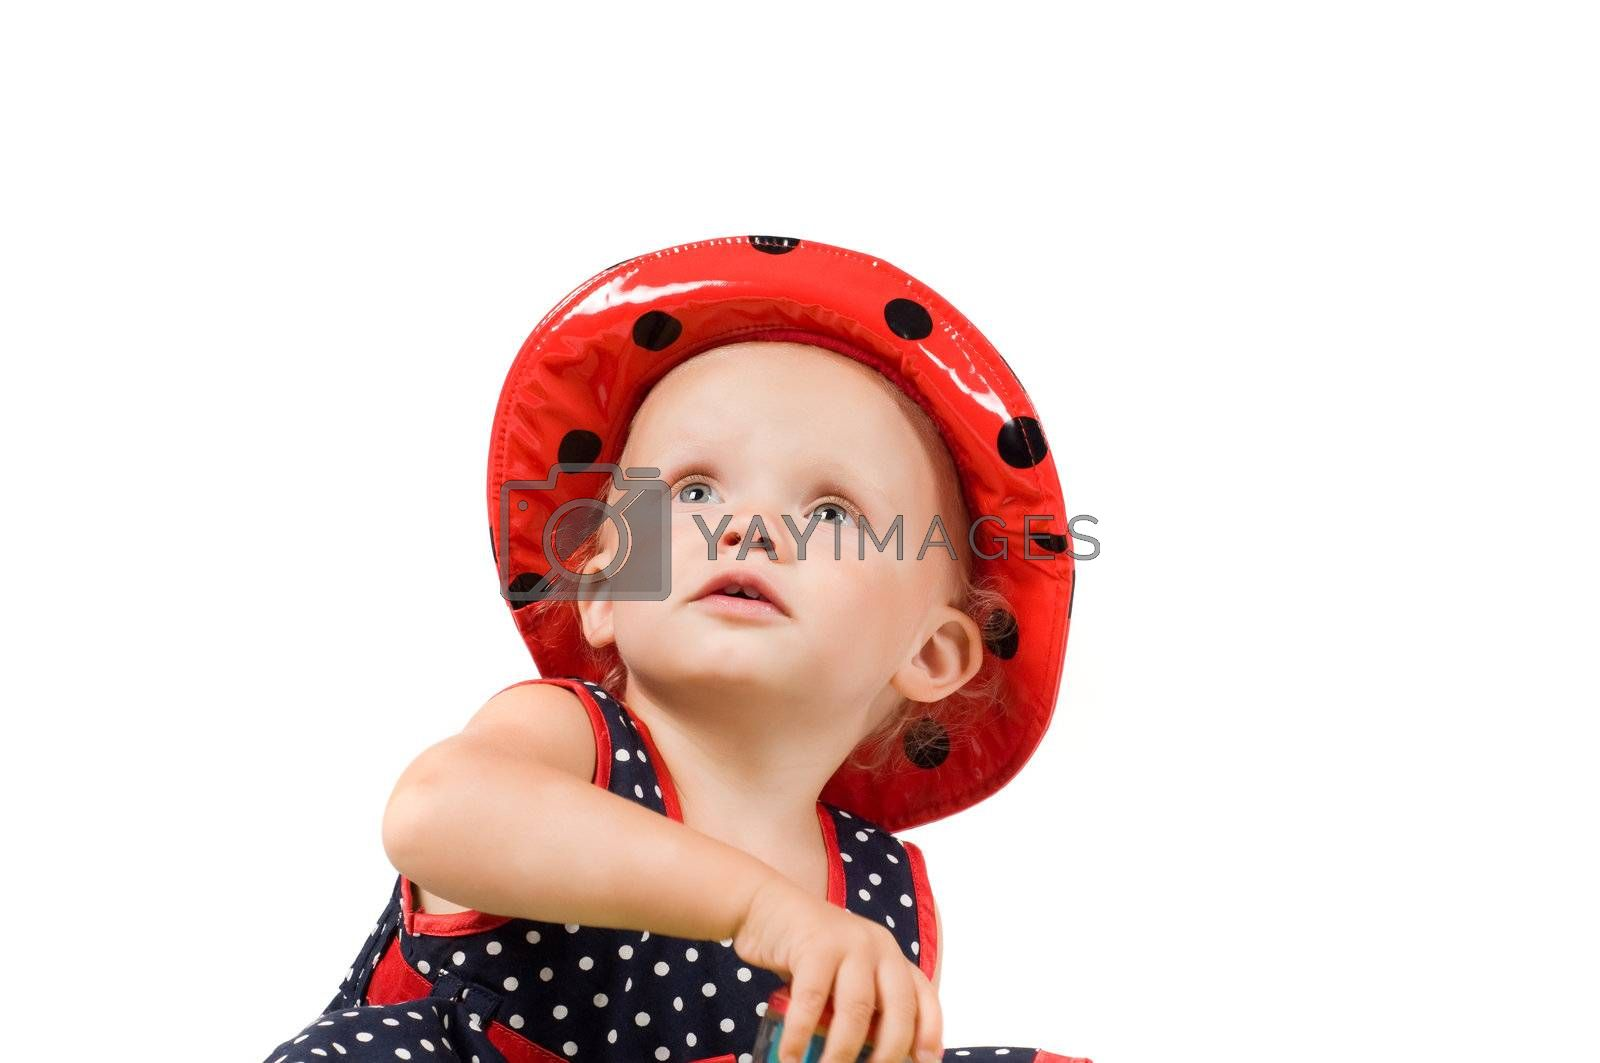 Royalty free image of Little girl in studio by anytka